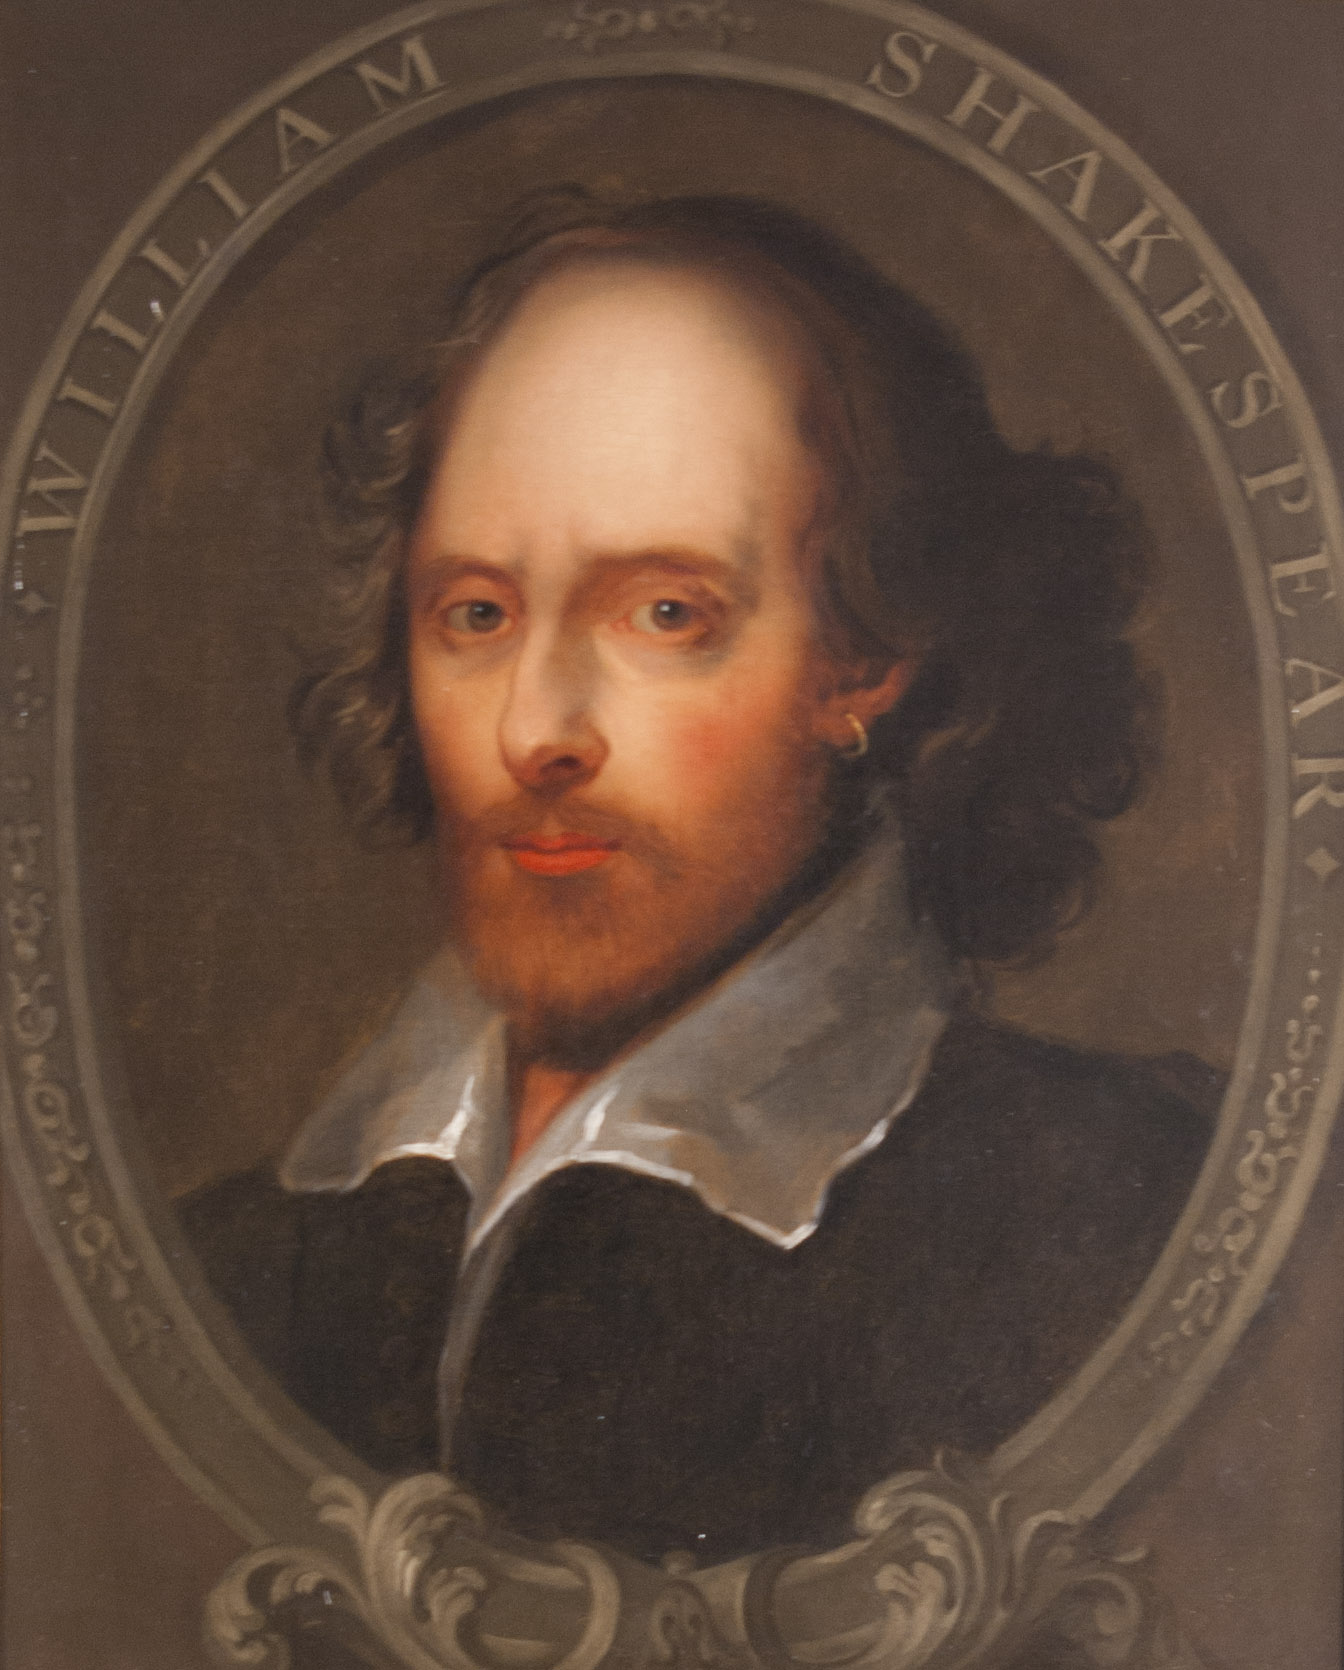 shakespeare vs dryden About william shakespeare william shakespeare was an english poet and playwright and arguable the greatest english writer that ever existed we will write a custom essay sample on shakespeare vs dryden specifically for you.